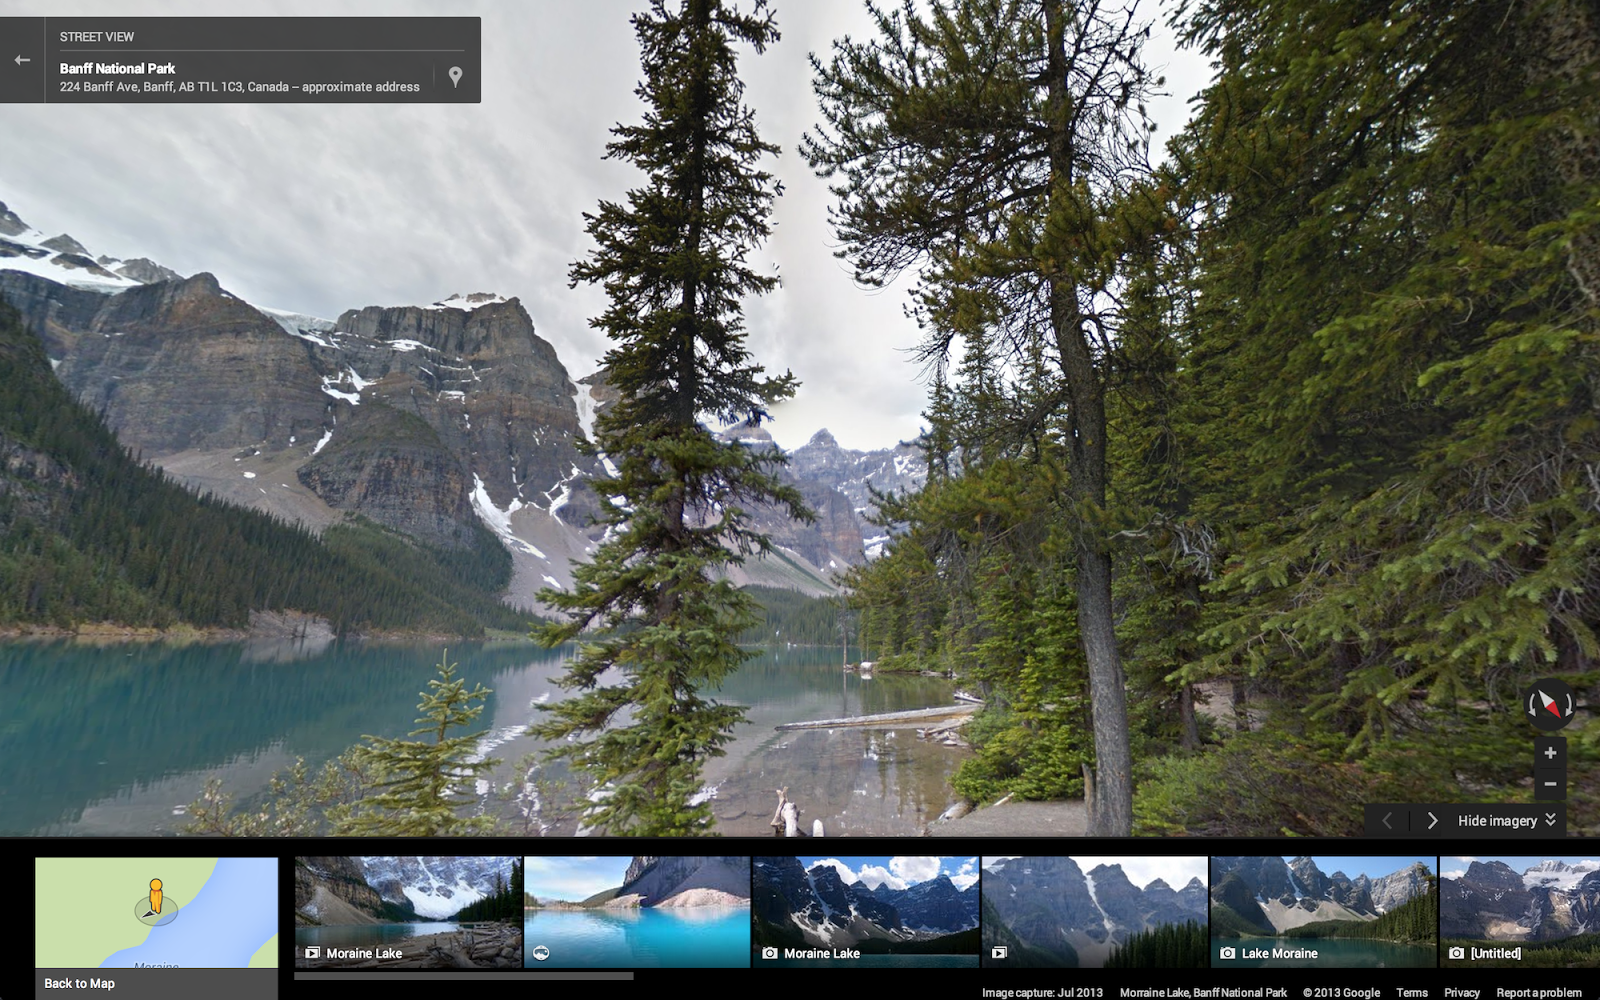 Google Lat Long Take A Hike With Street View Through US - Map of banff and us